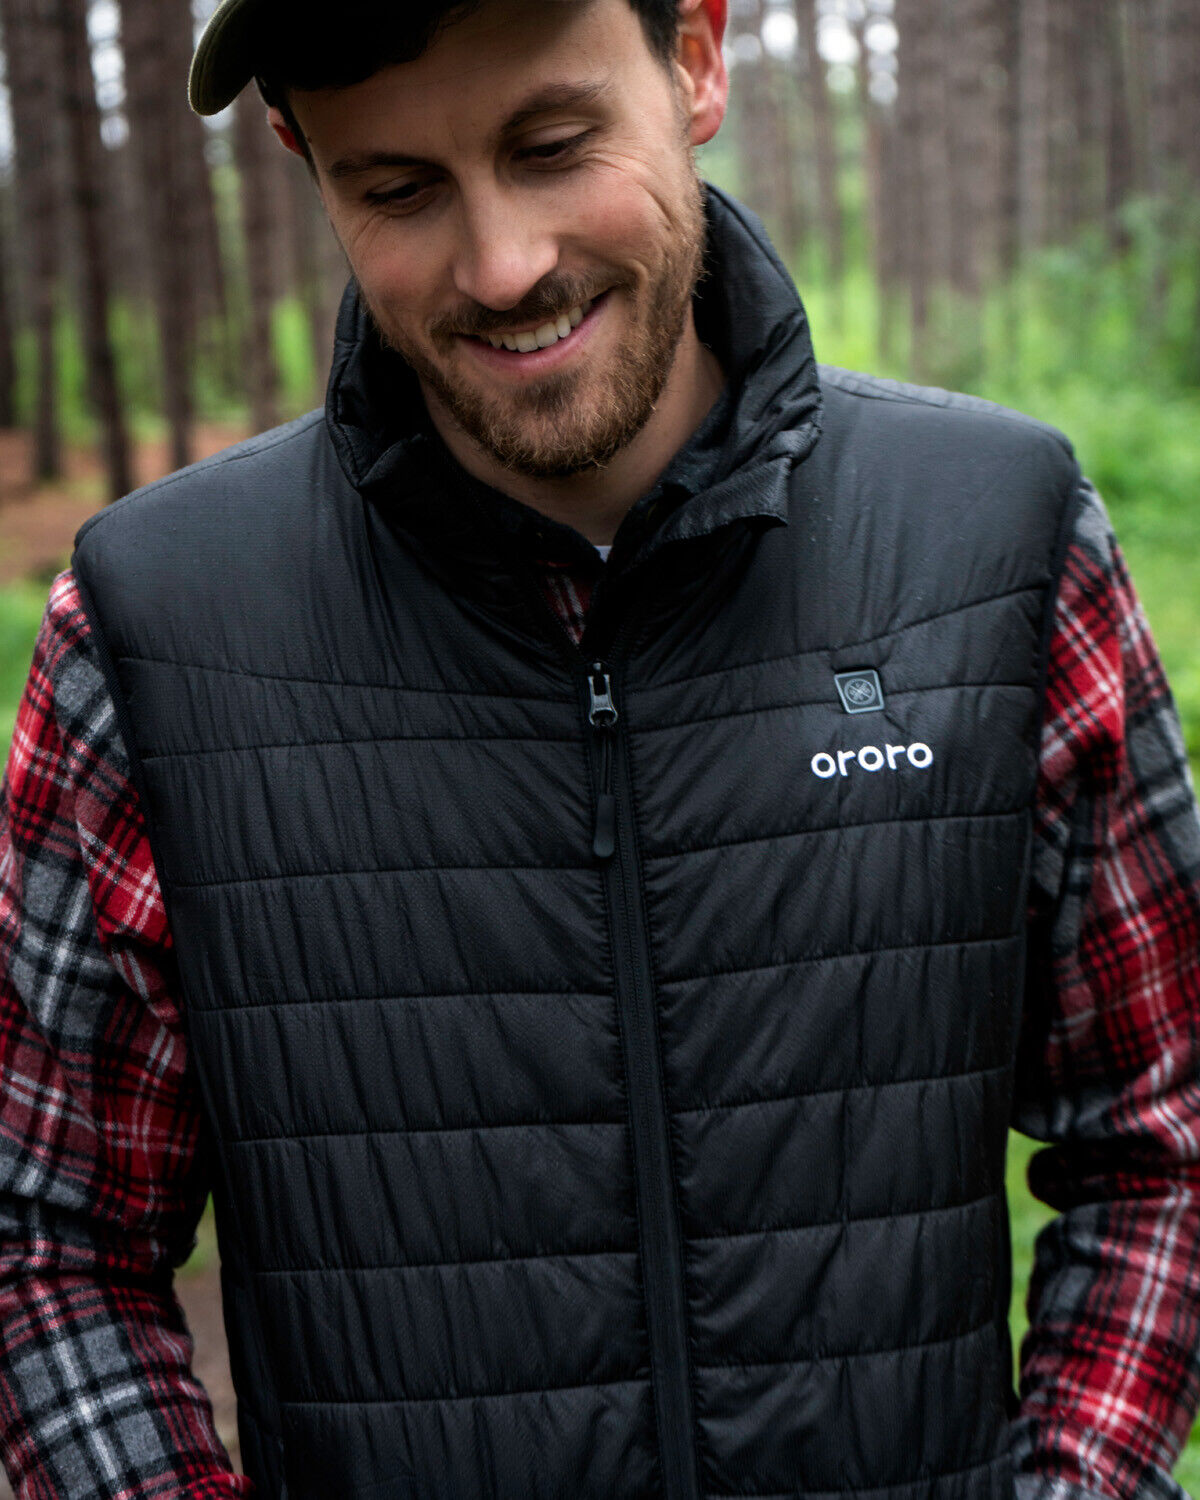 US Stock ORORO Men Heated Vest With Battery Water Resistant